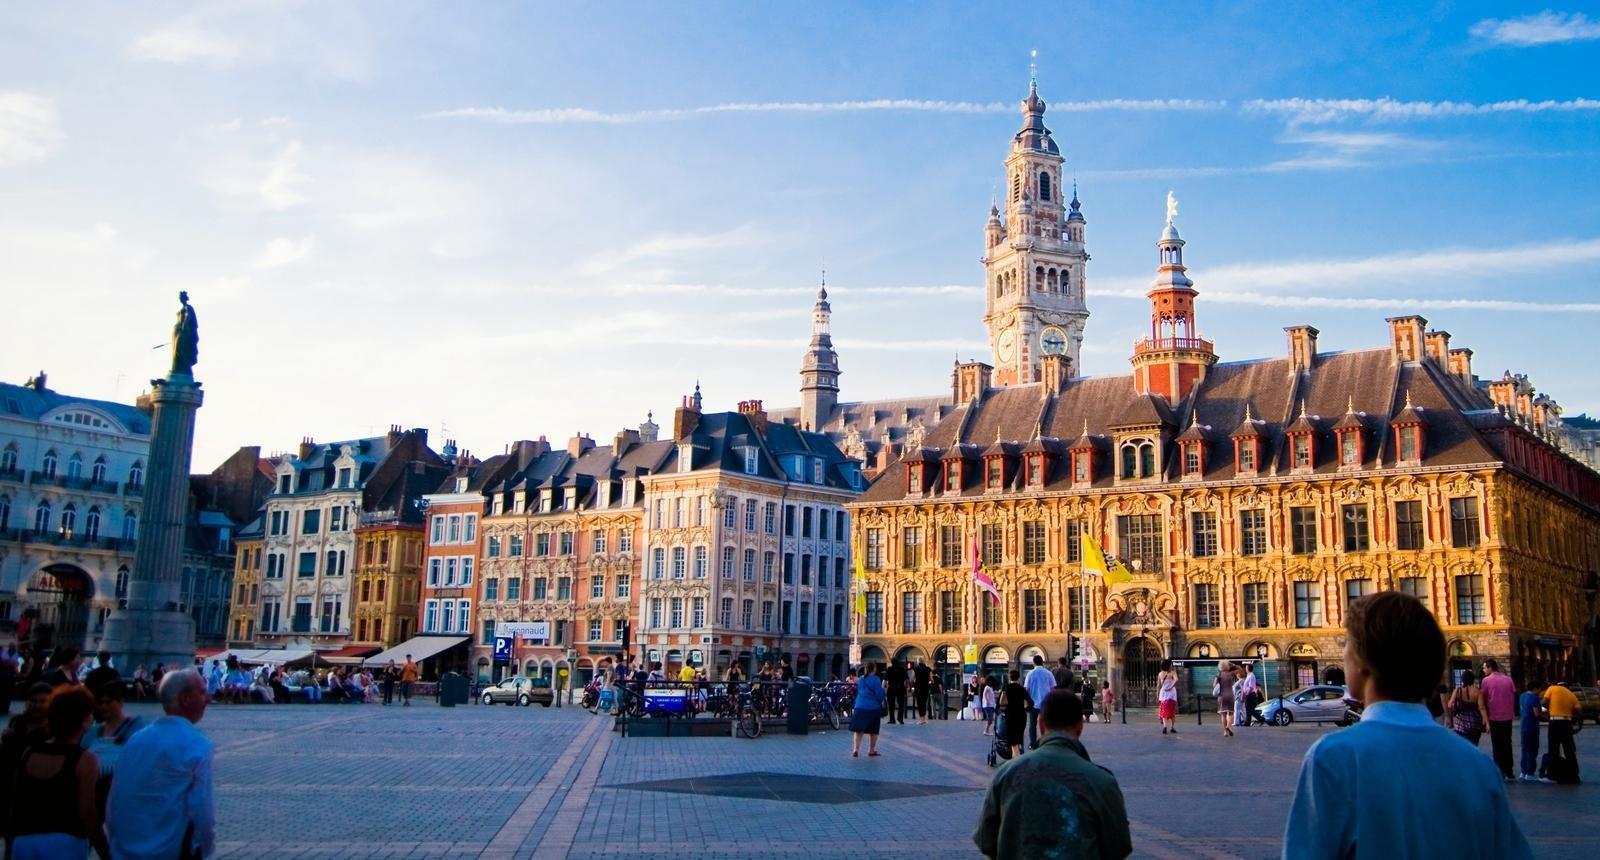 Bonjour! My recommendations for Lille, France